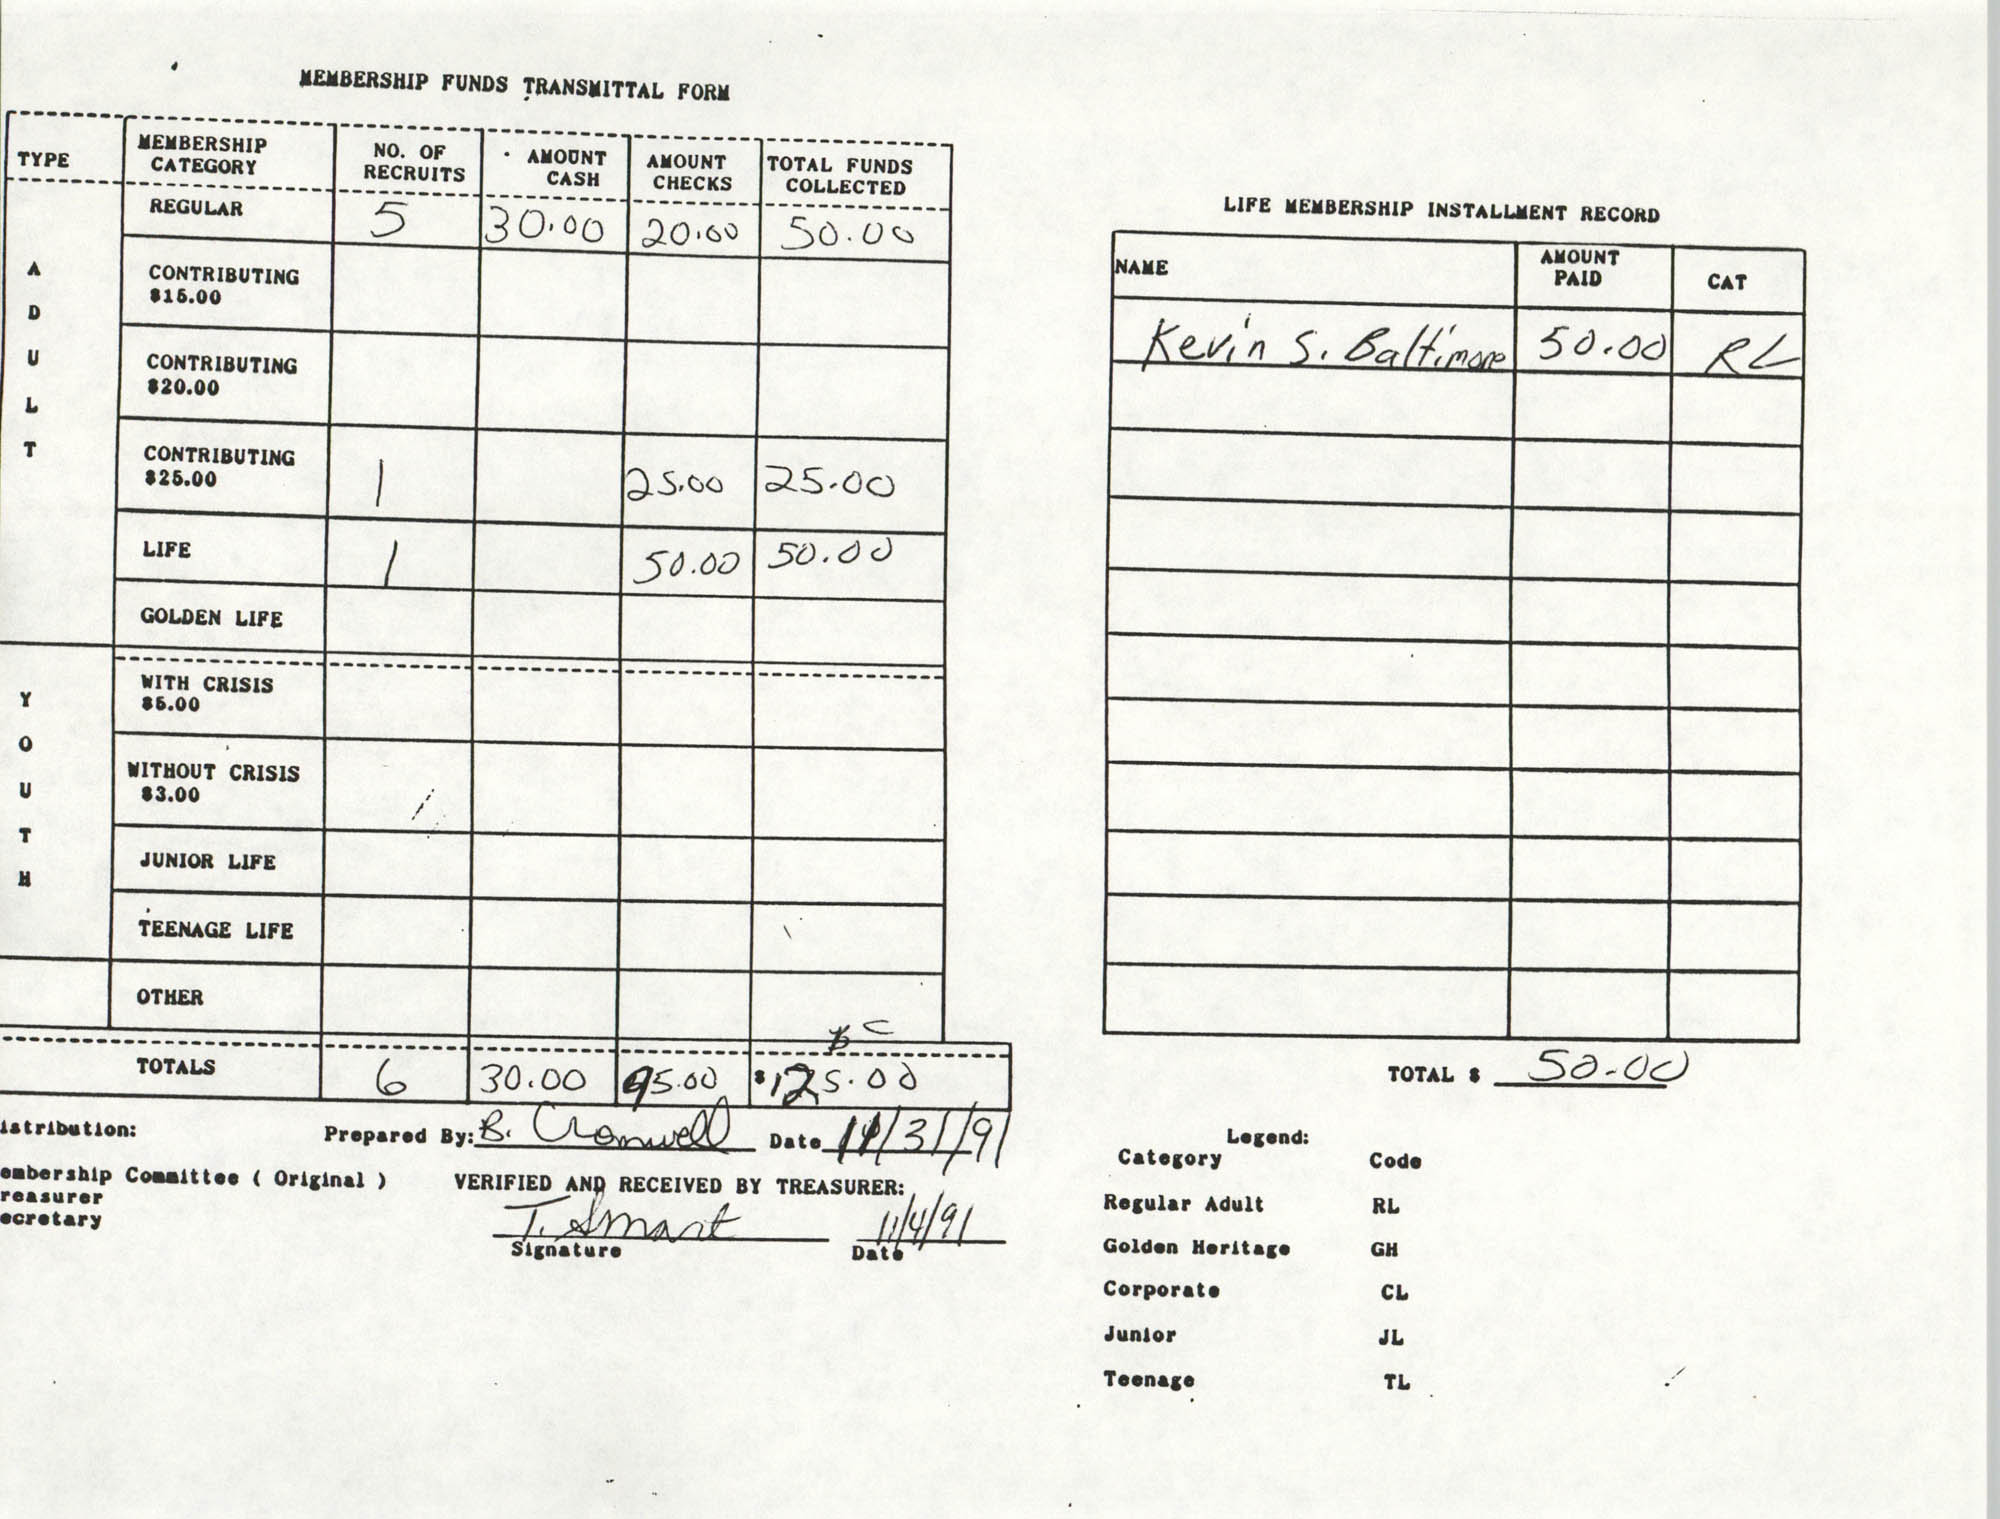 Charleston Branch of the NAACP Funds Transmittal Forms, November 1991, Page 6